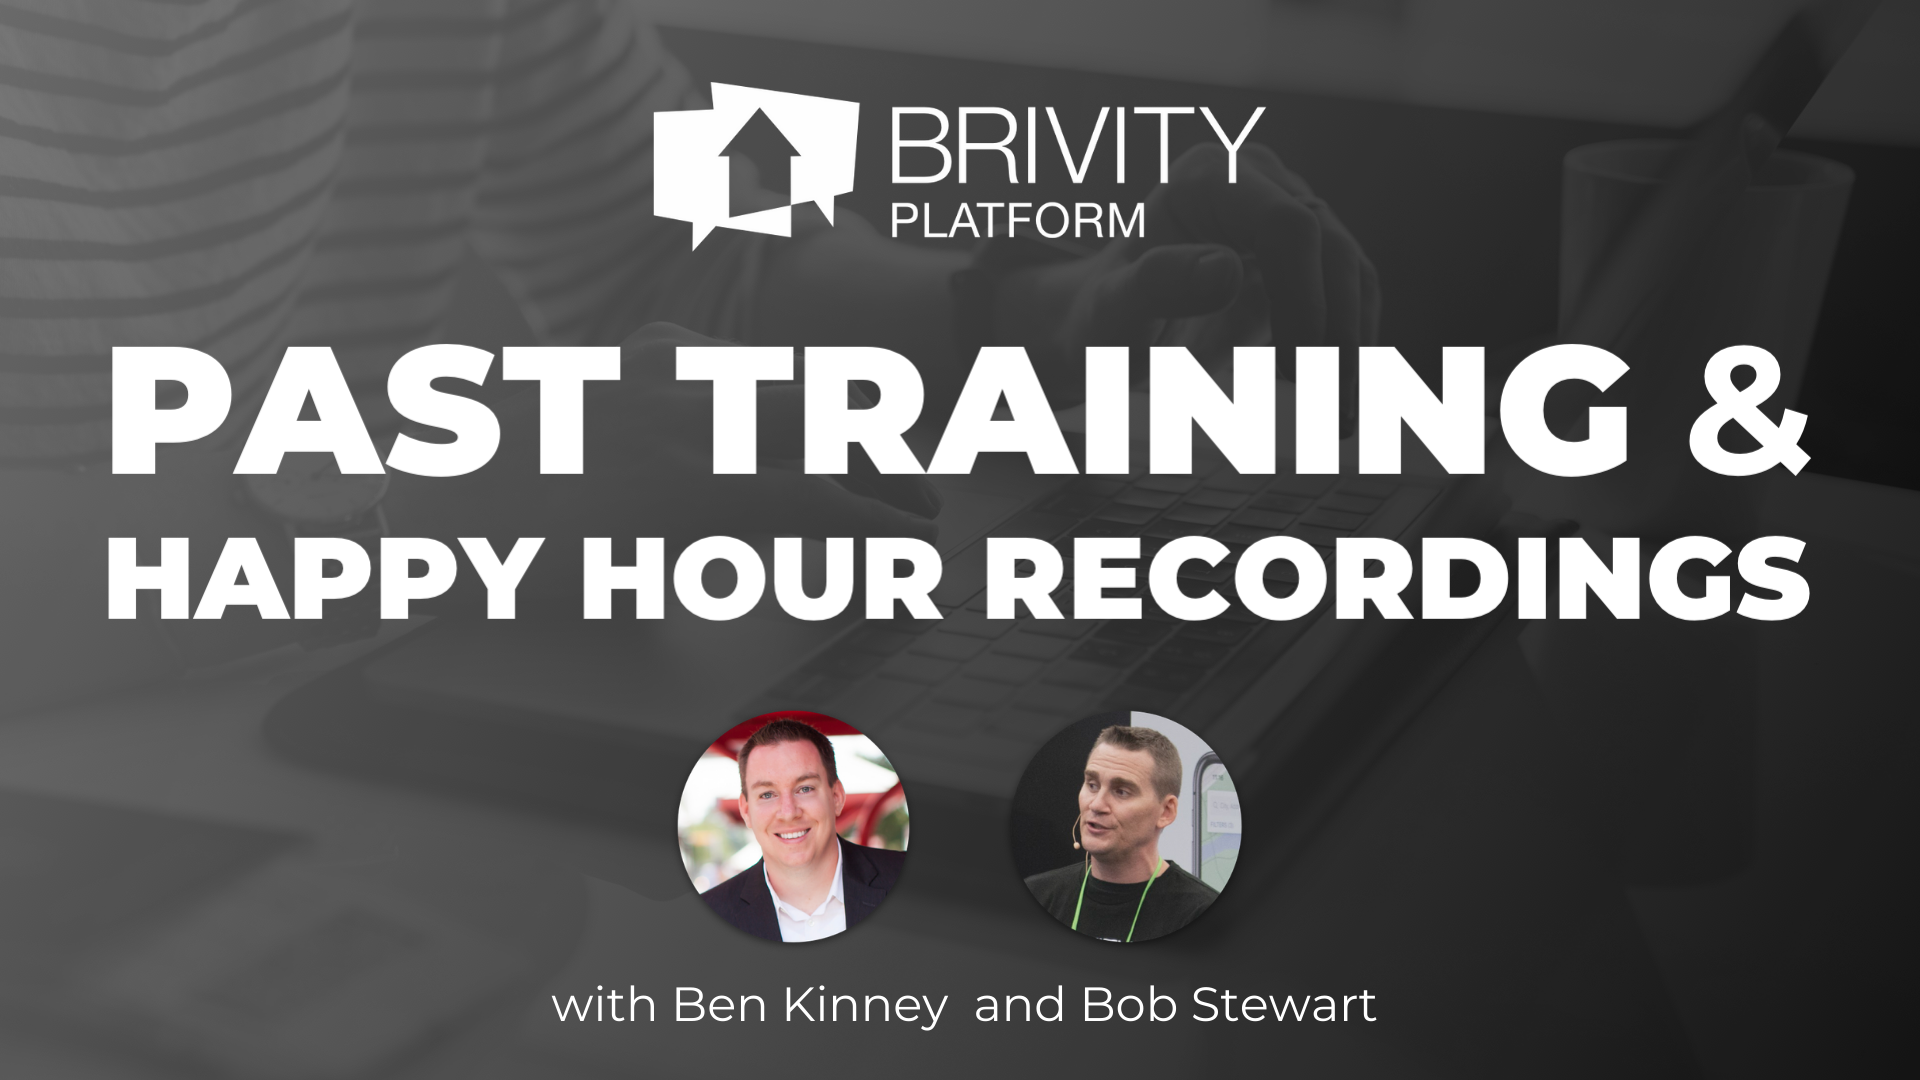 Copy of Brivity - Past Training